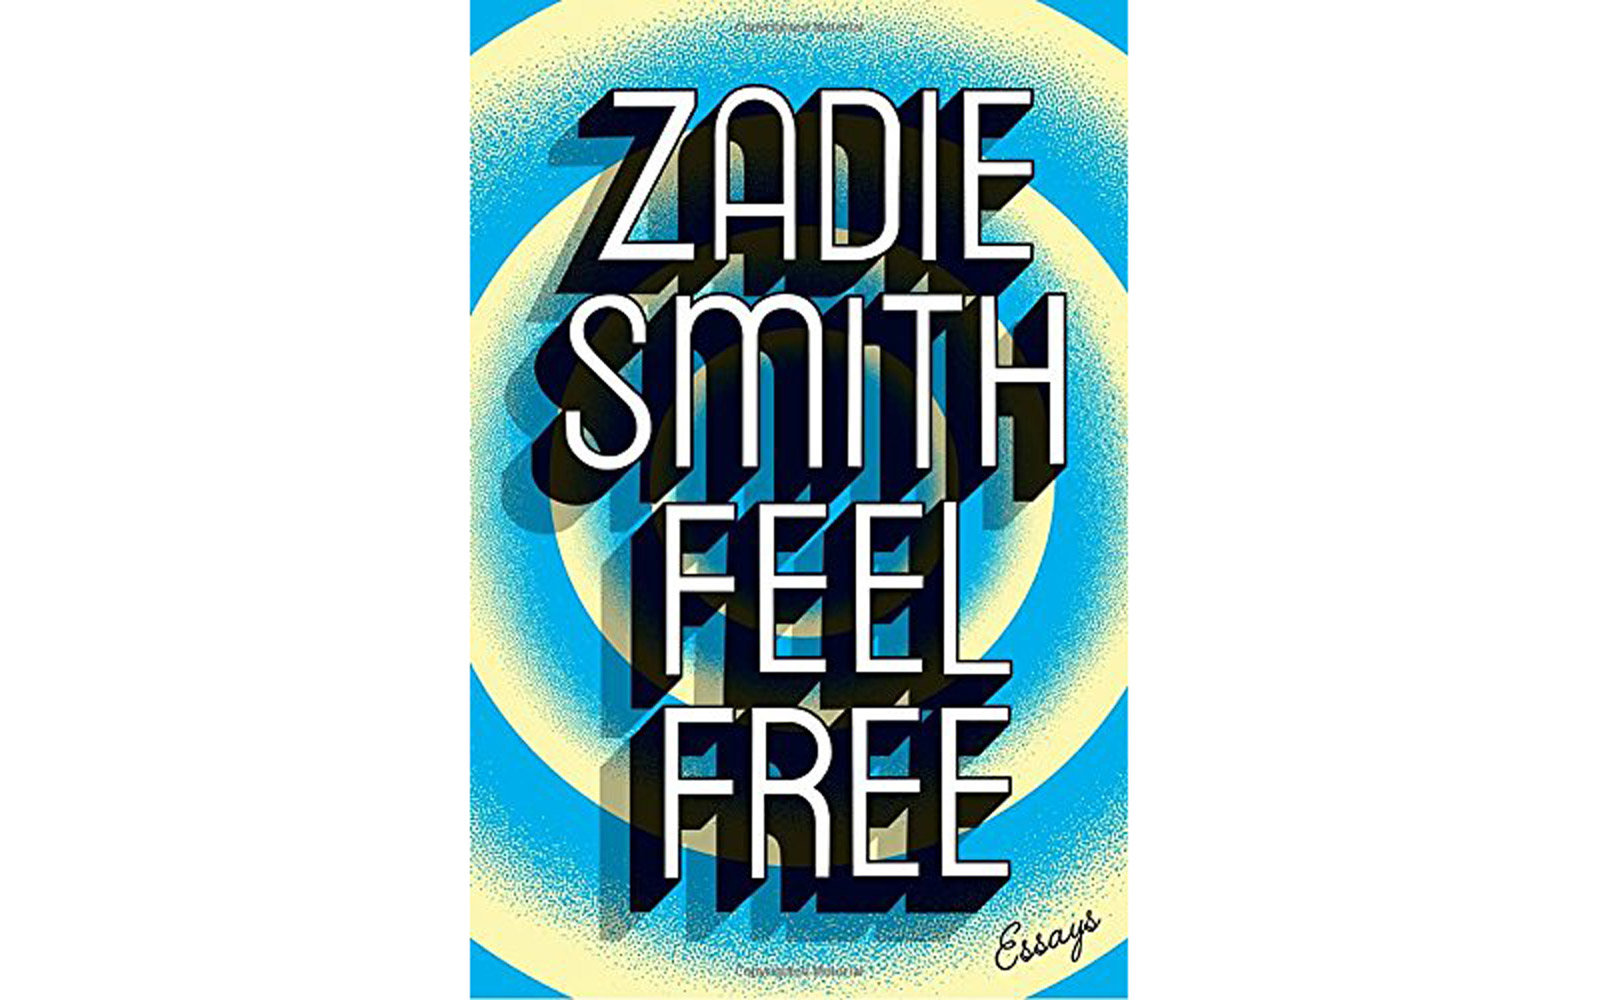 'Feel Free' by Zadie Smith